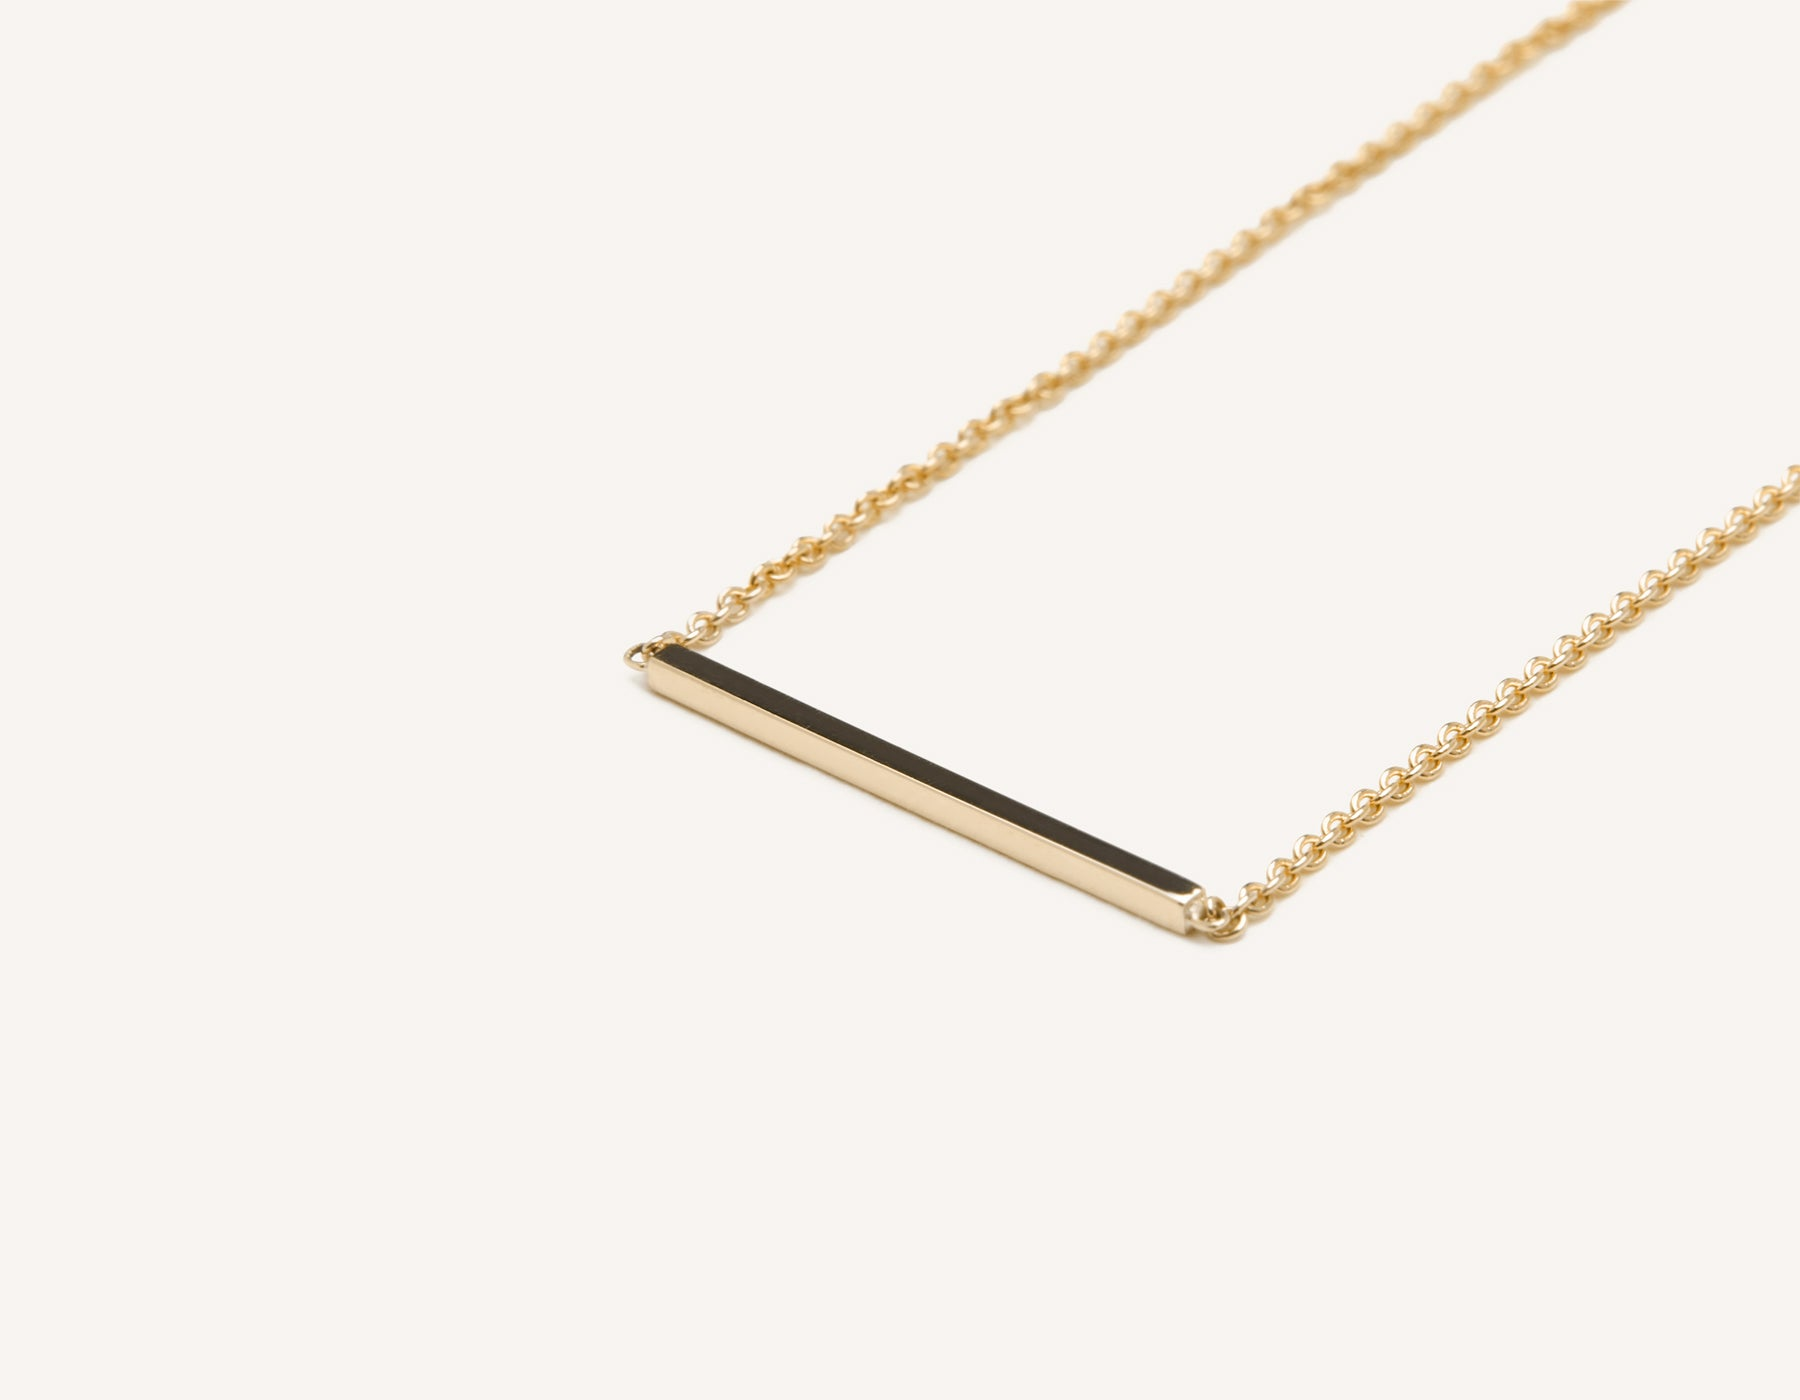 Modern minimalist 14k solid gold Line Necklace dainty chain Vrai and Oro sustainable jewelry, 14K Yellow Gold